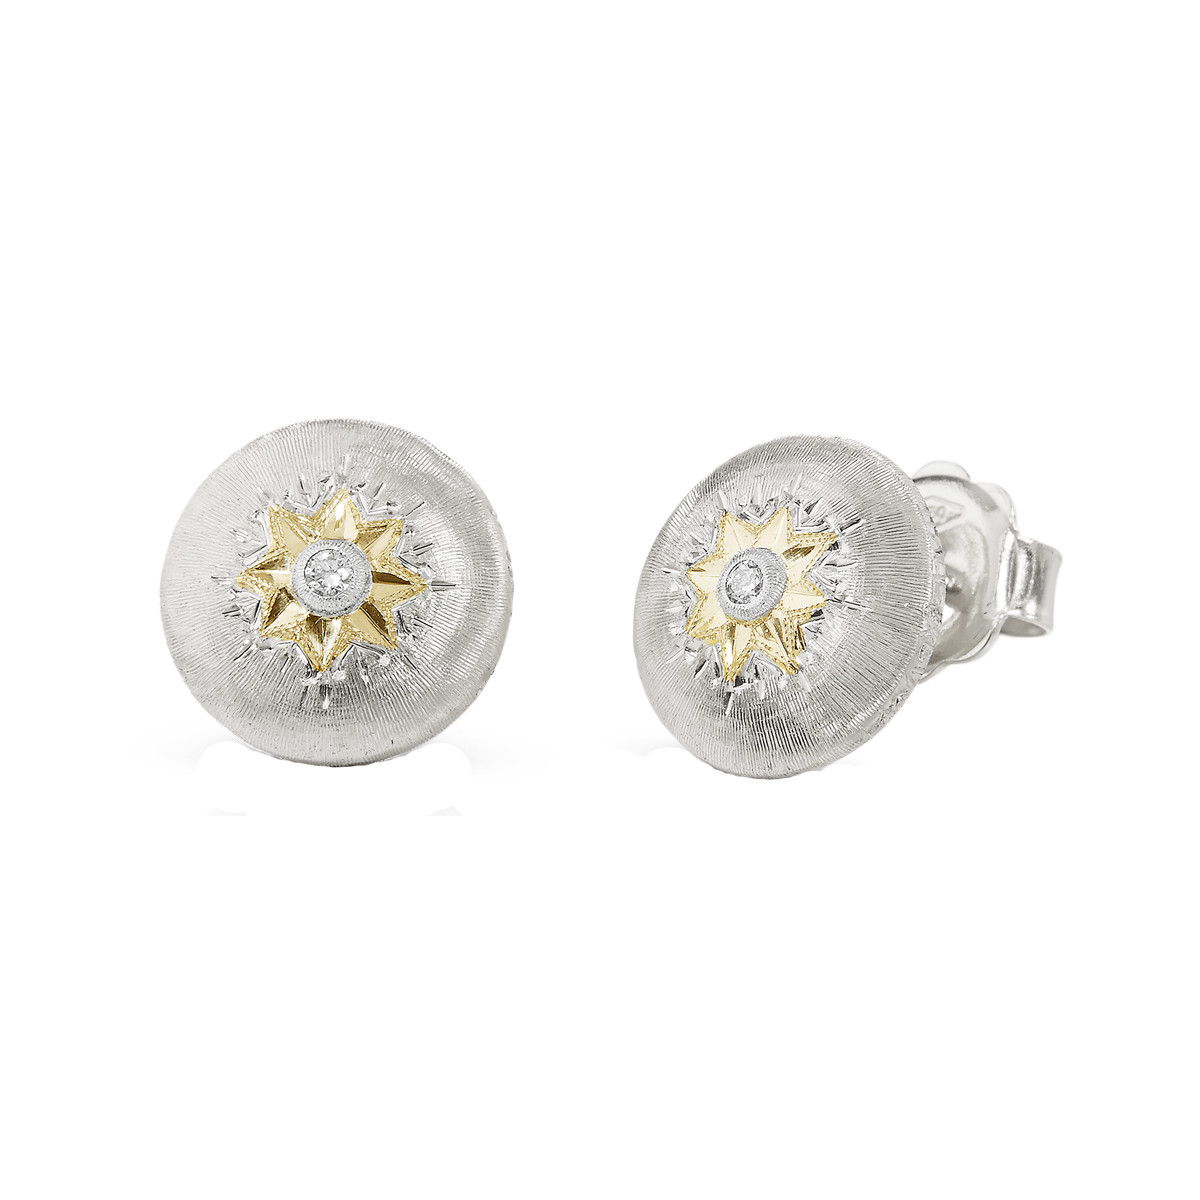 "18k White Gold & Diamond ""Macri"" Stud Earrings"